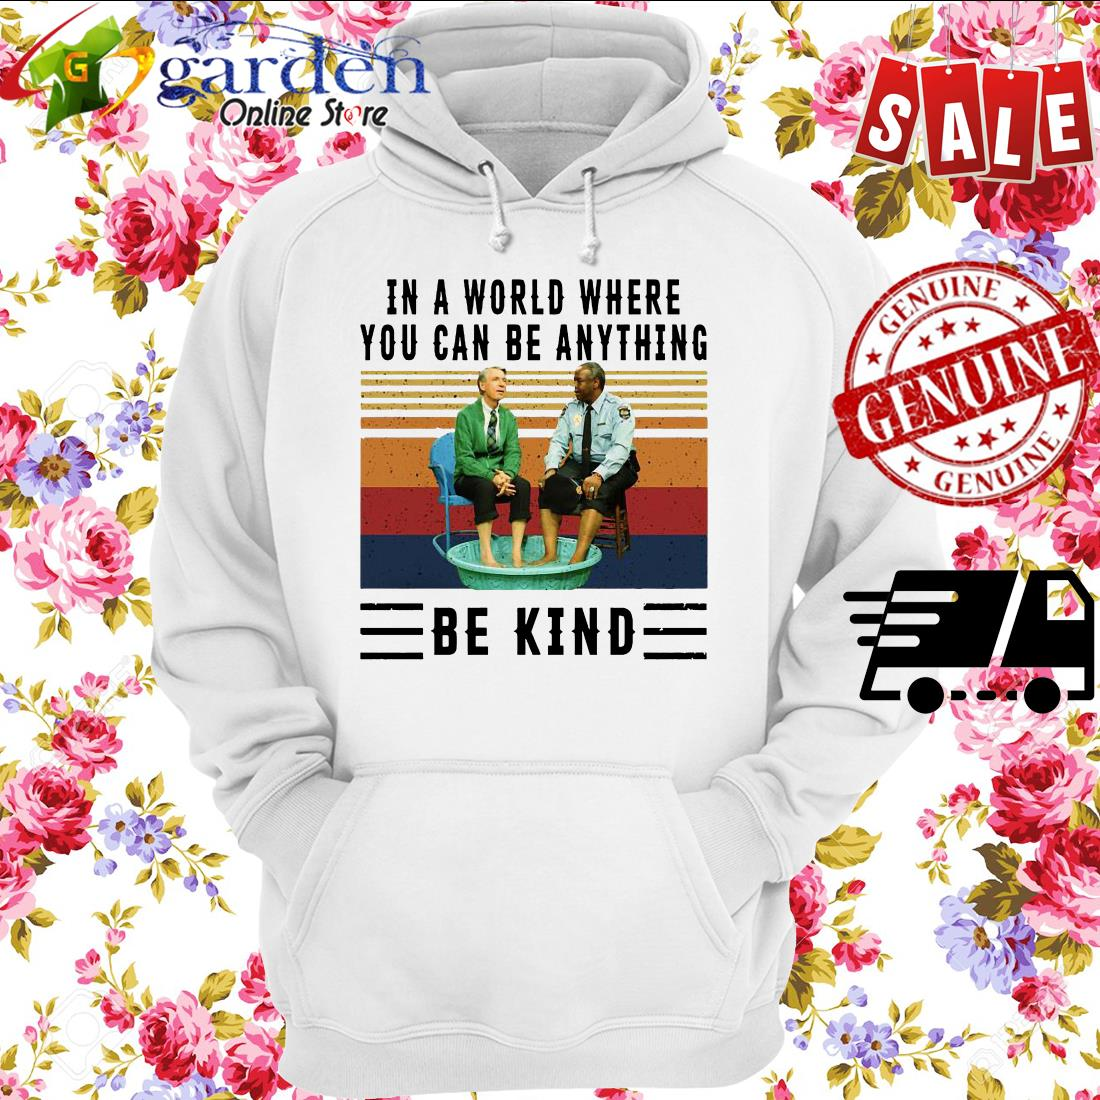 In A World Where You Can Be Anything Be Kind Kiddie Pool And Mr Rogers Vintage Shirt Hoodie Sweatshirt Longsleeve Tee